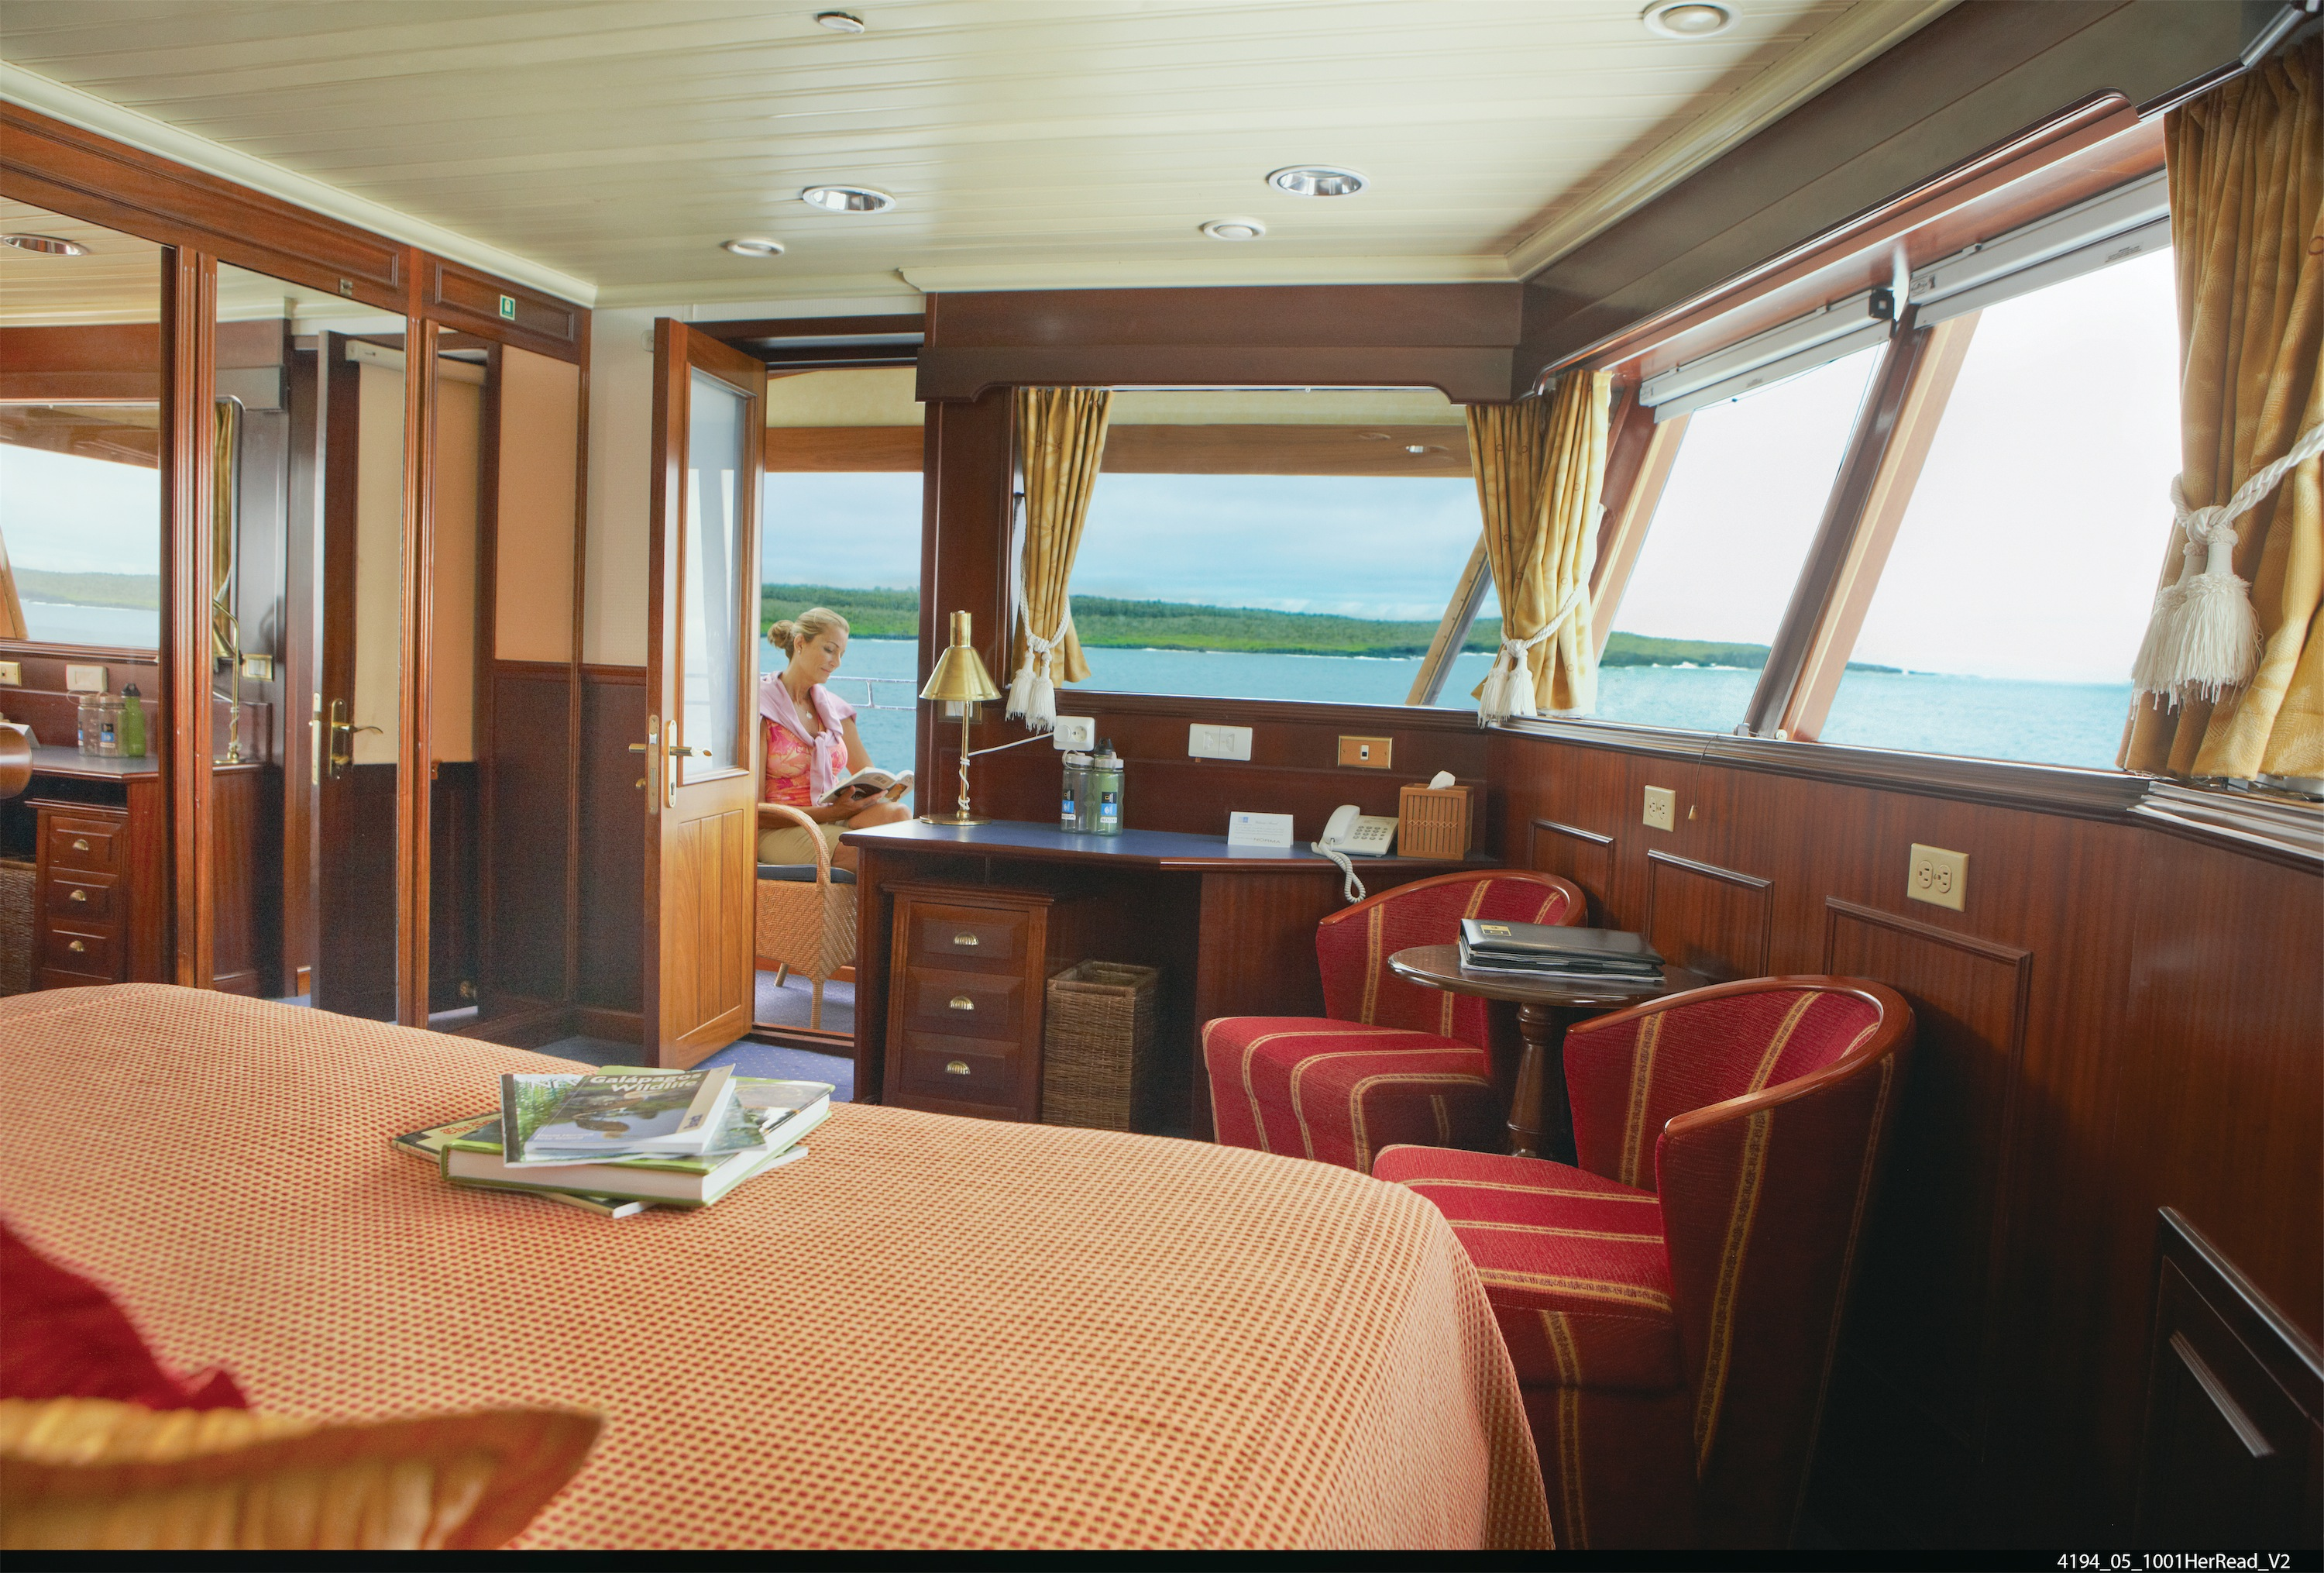 Lindblad Expeditions National Geographic Islander Accommodation Category 5 Living Area & Balcony.jpg